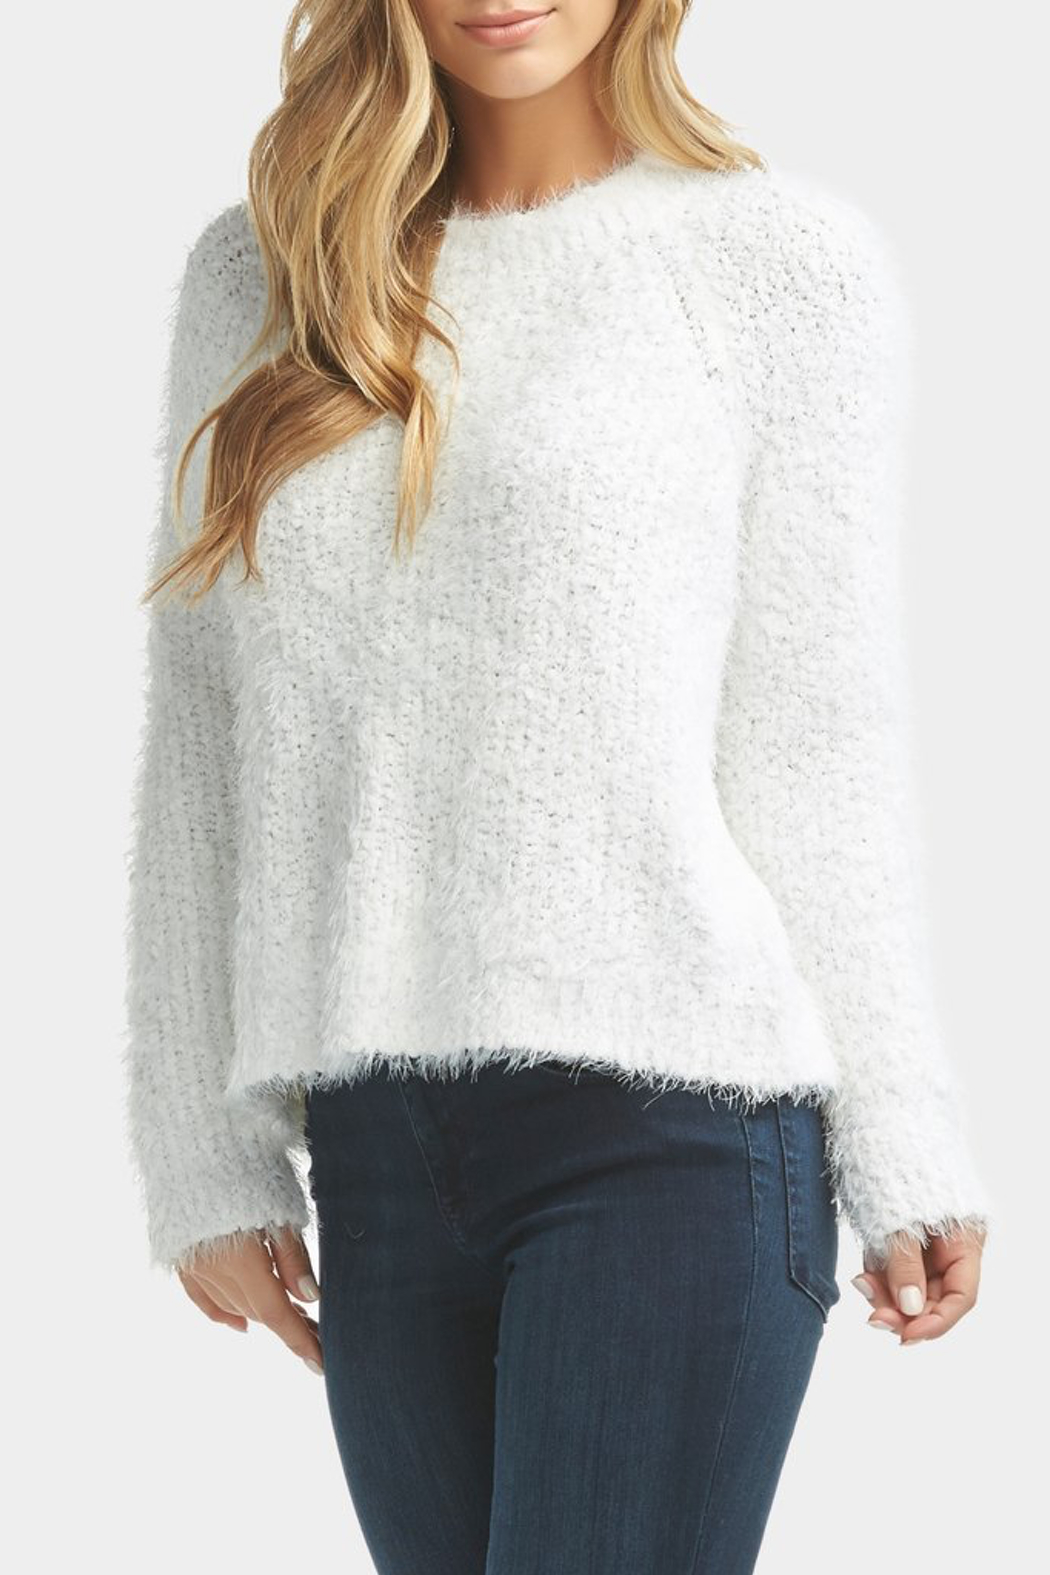 Tart Collections Delisa Sweater - Side Cropped Image